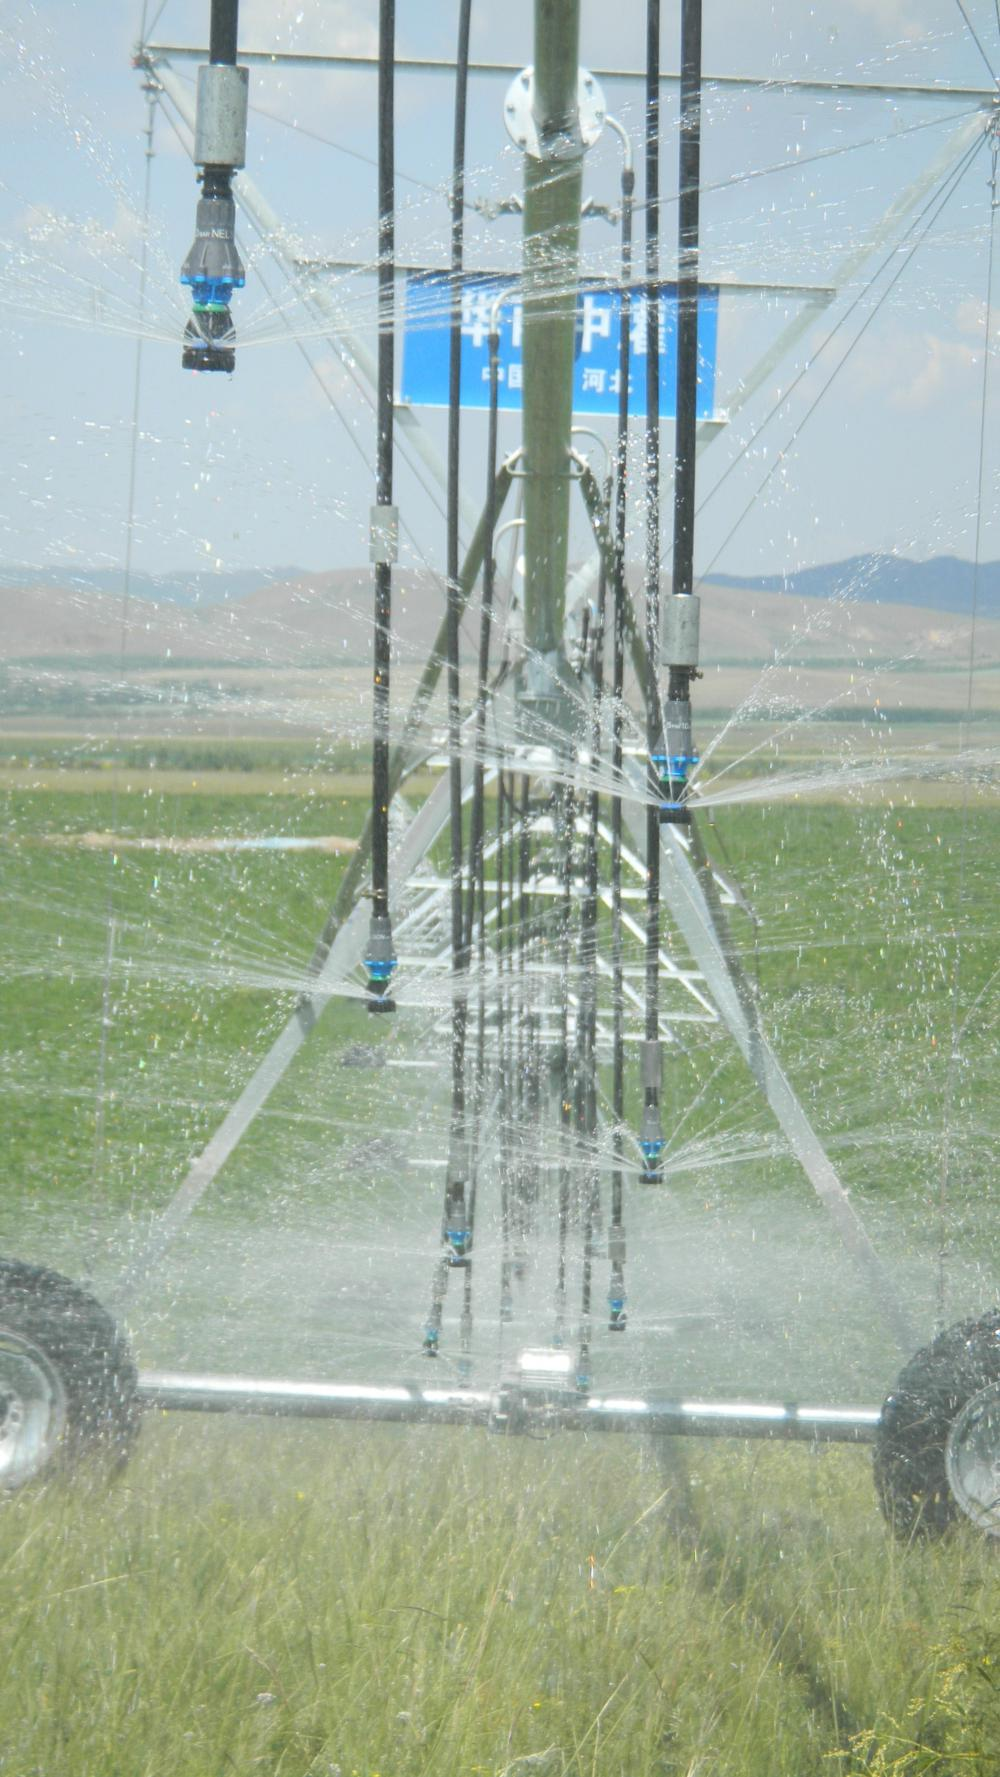 automatic pivot irrigation system used in agriculture